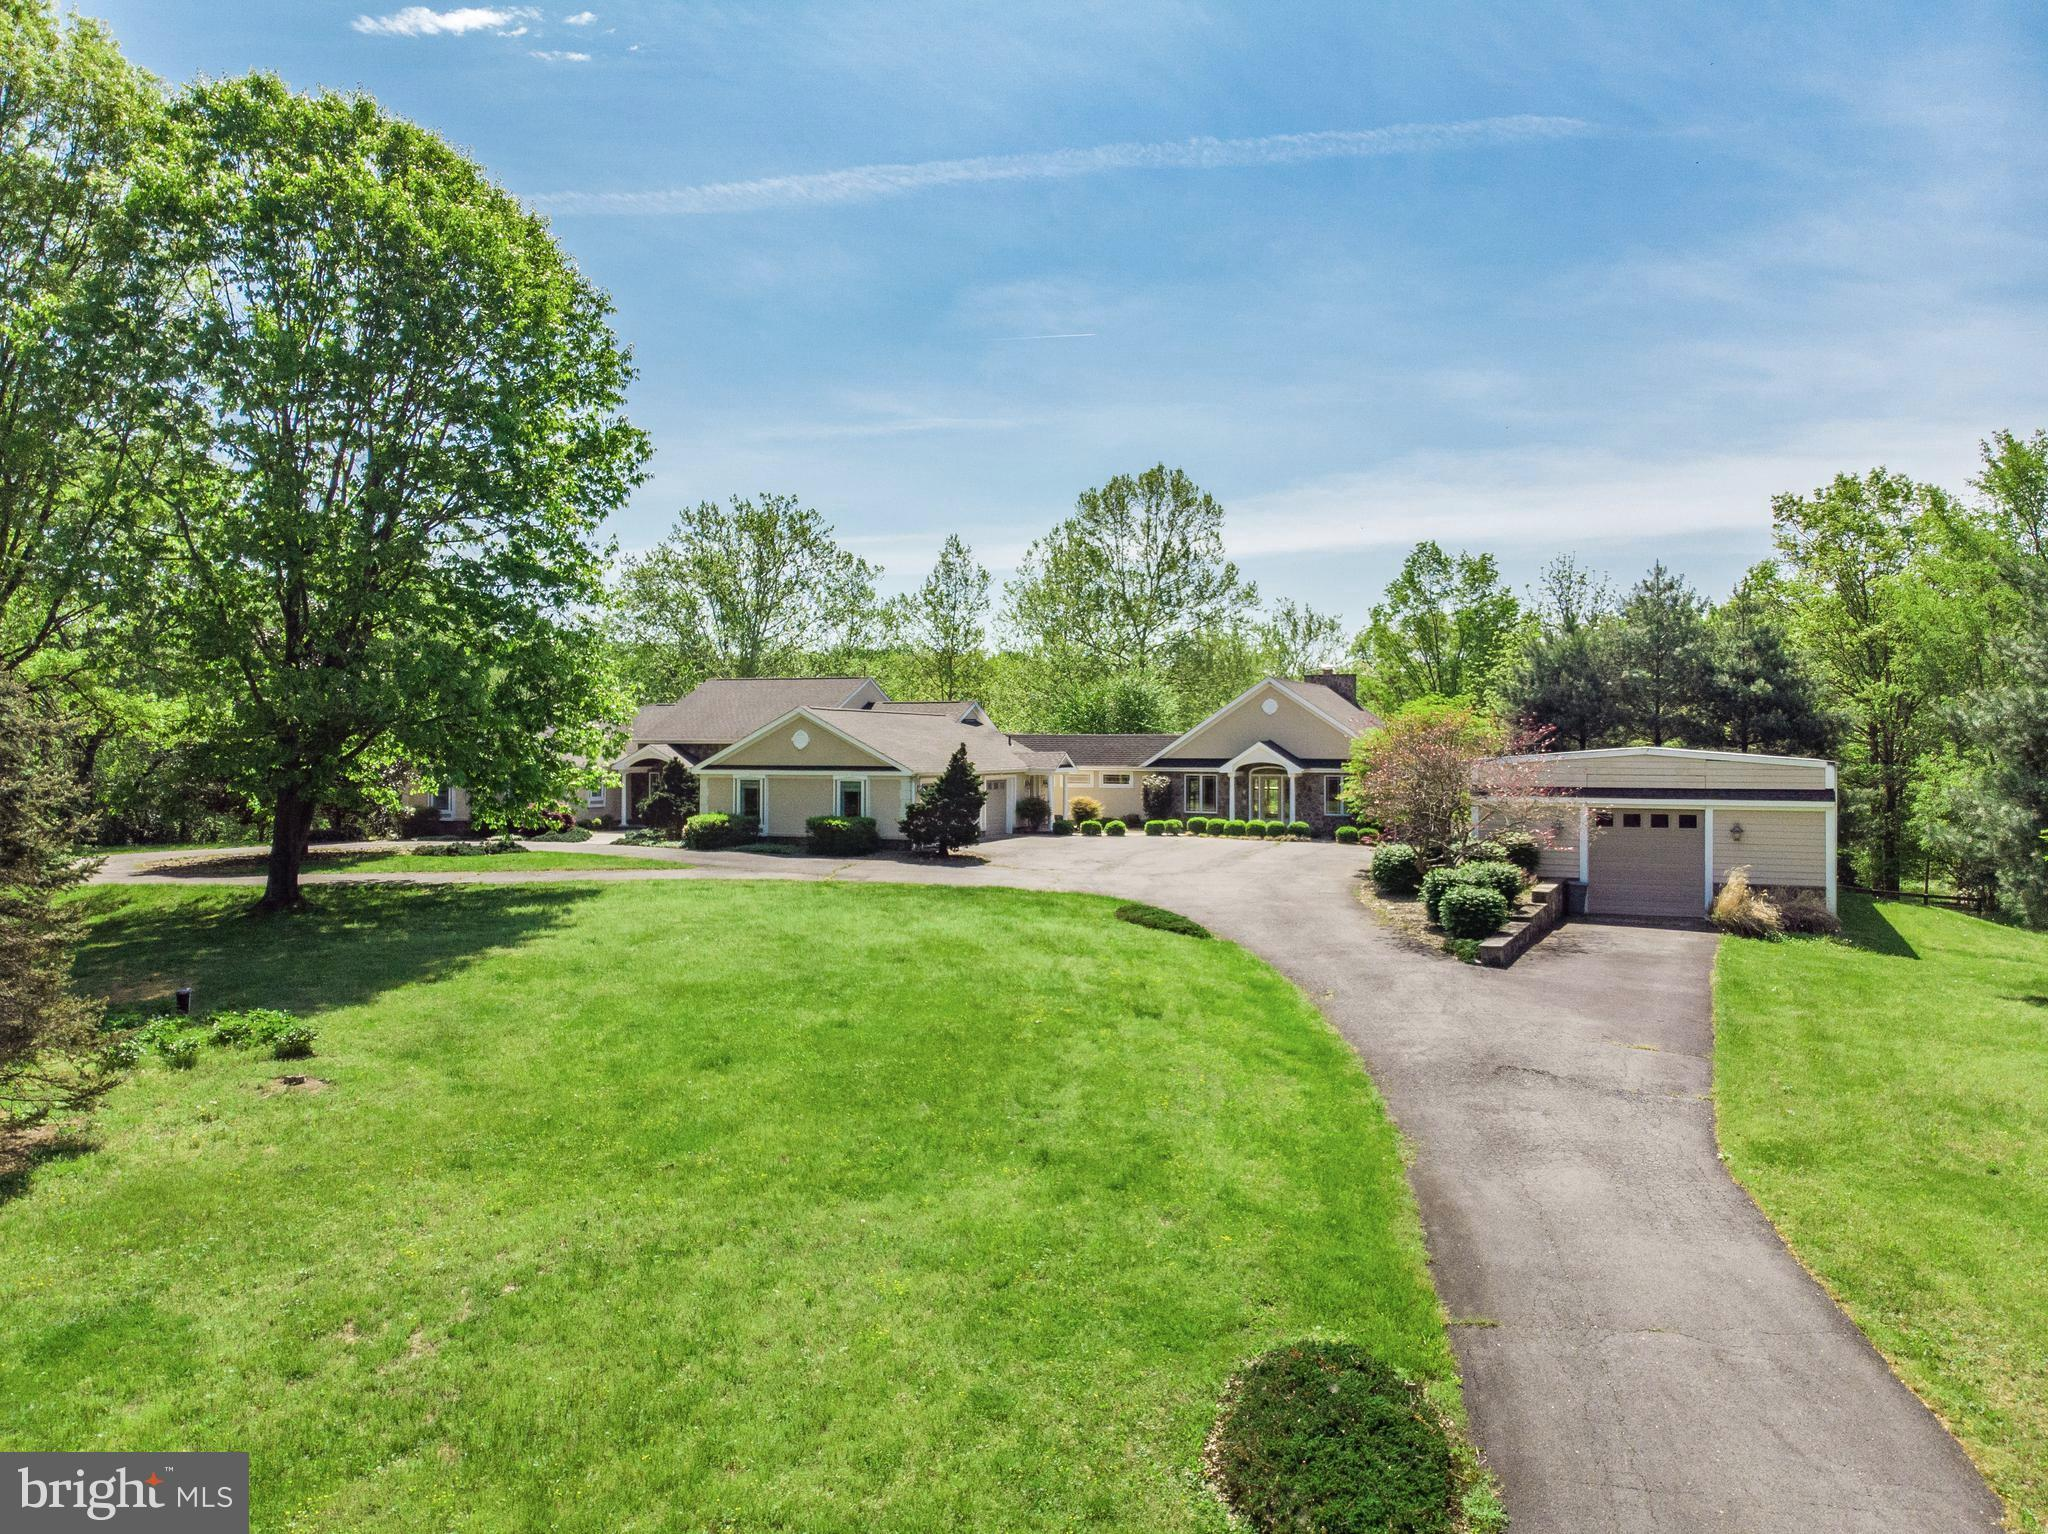 8887 WOODWARD ROAD, MARSHALL, VA 20115